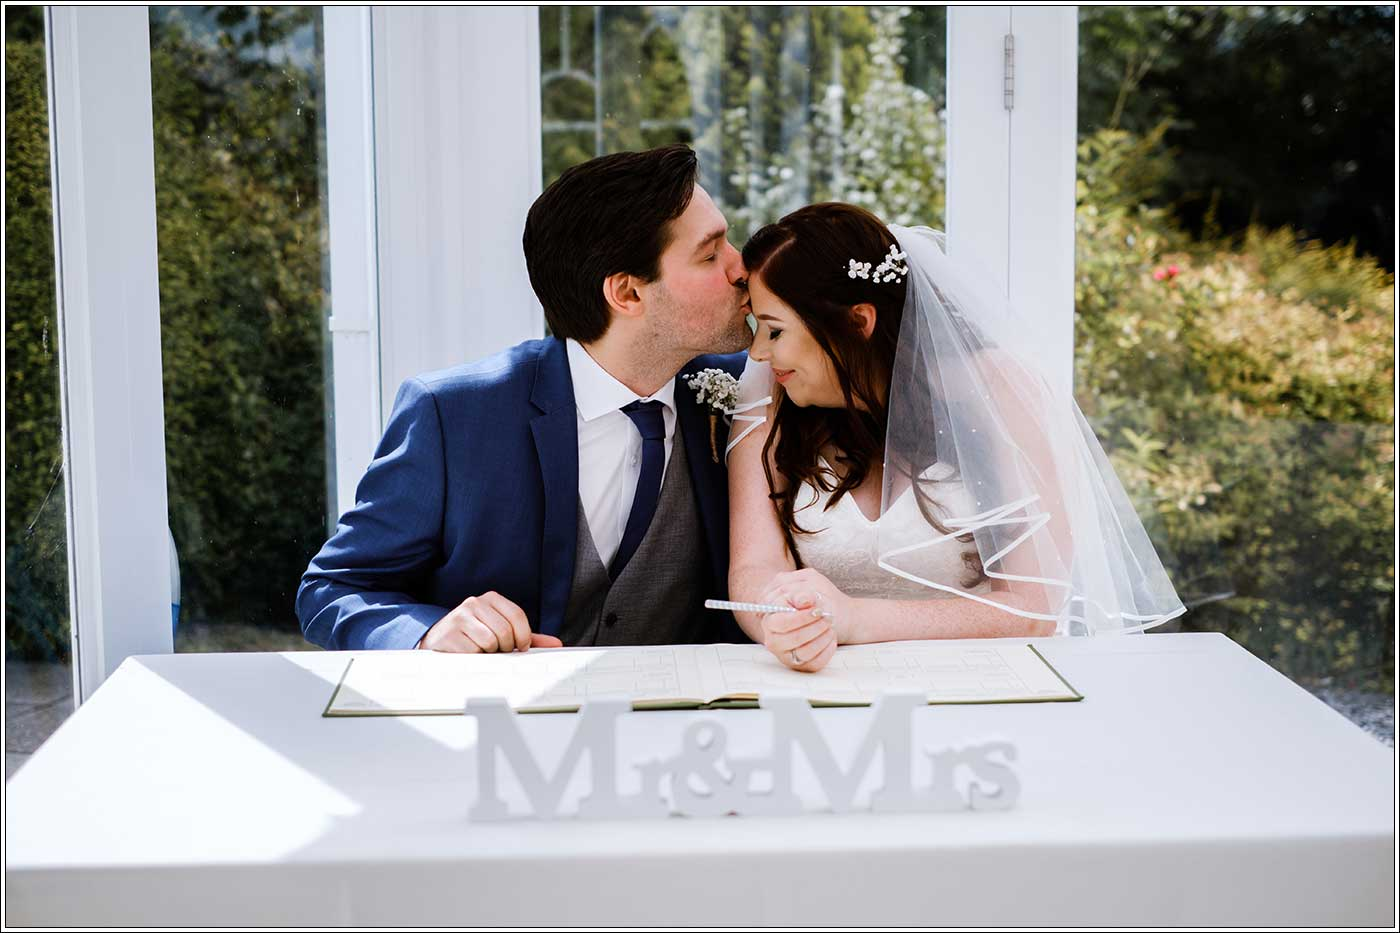 Groom kissing bride on her forehead